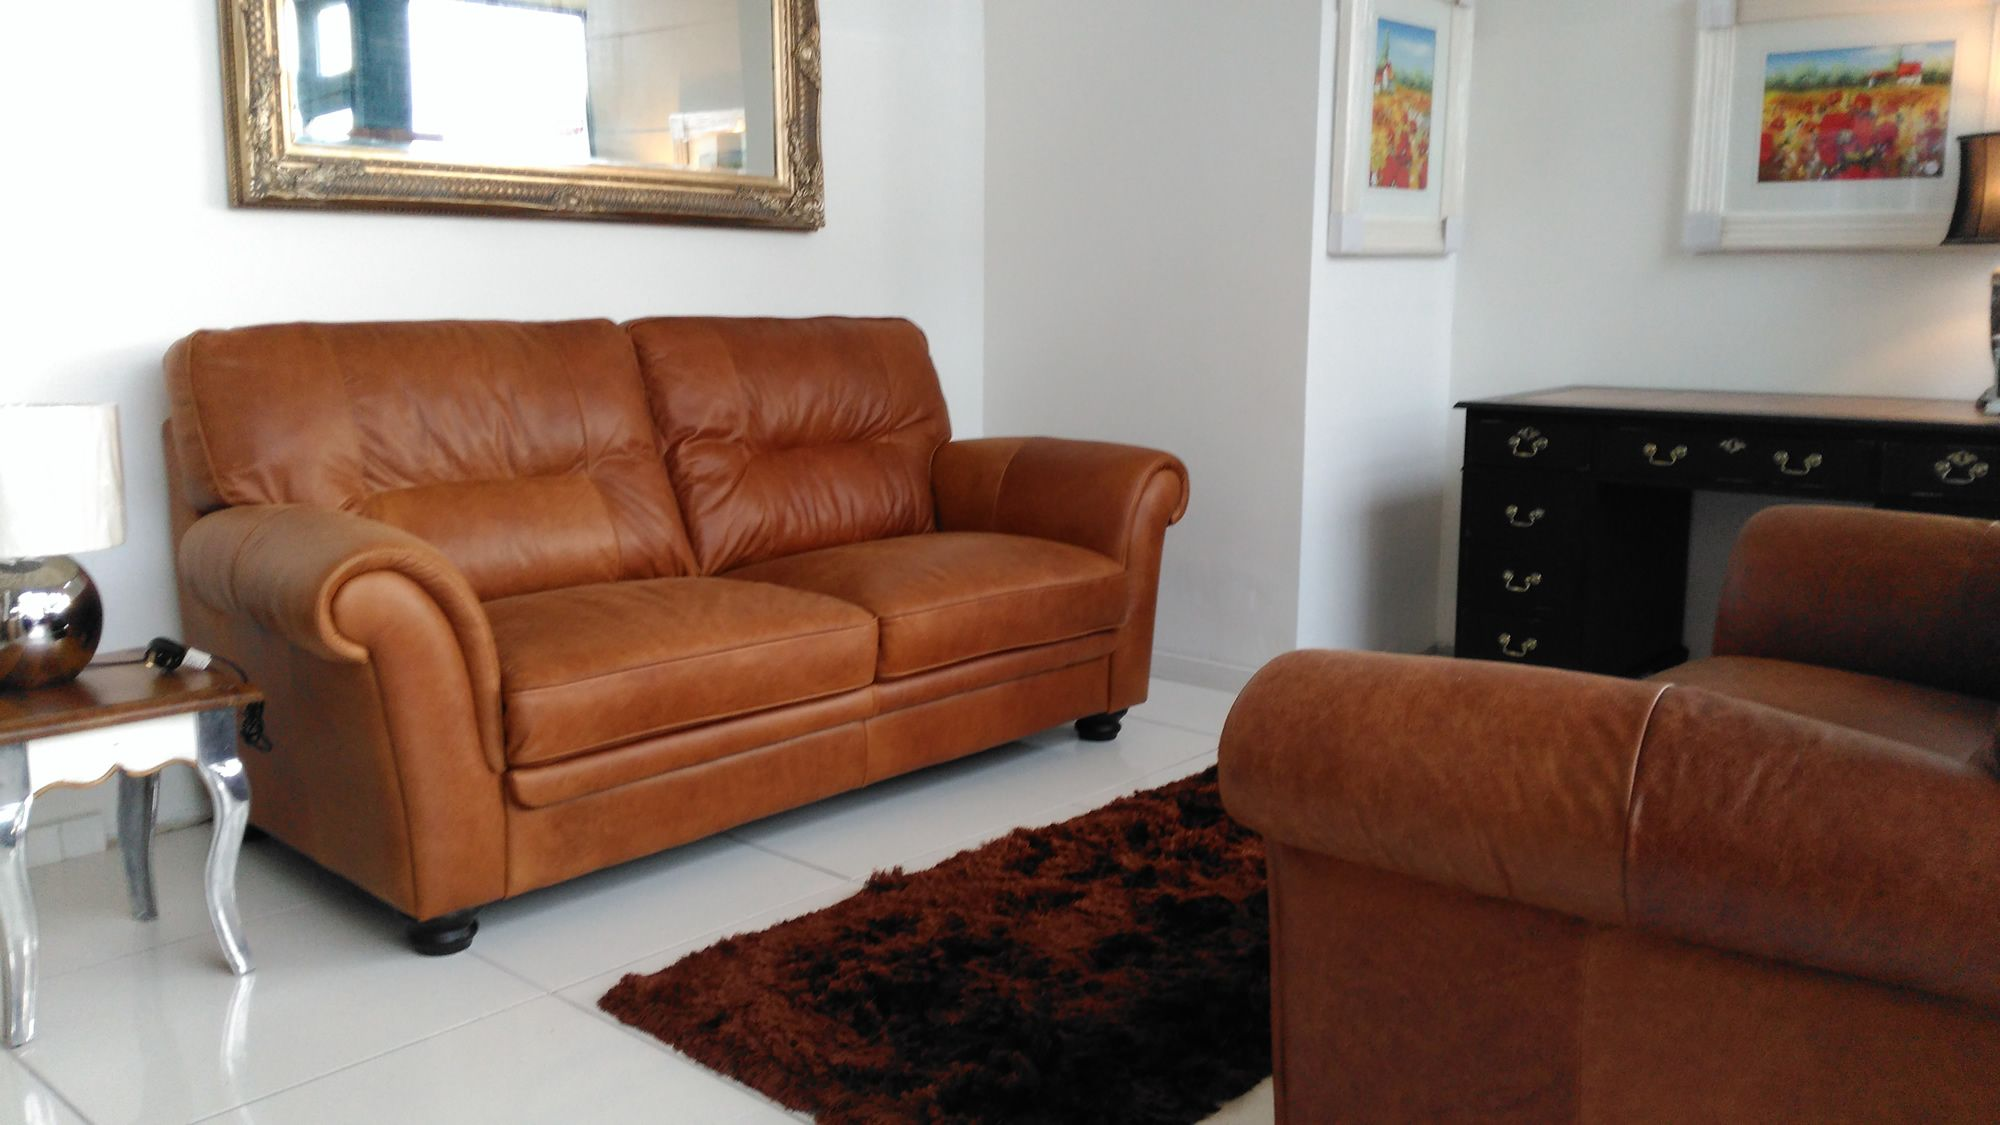 The Simona suite is beautiful tanned Italian leather